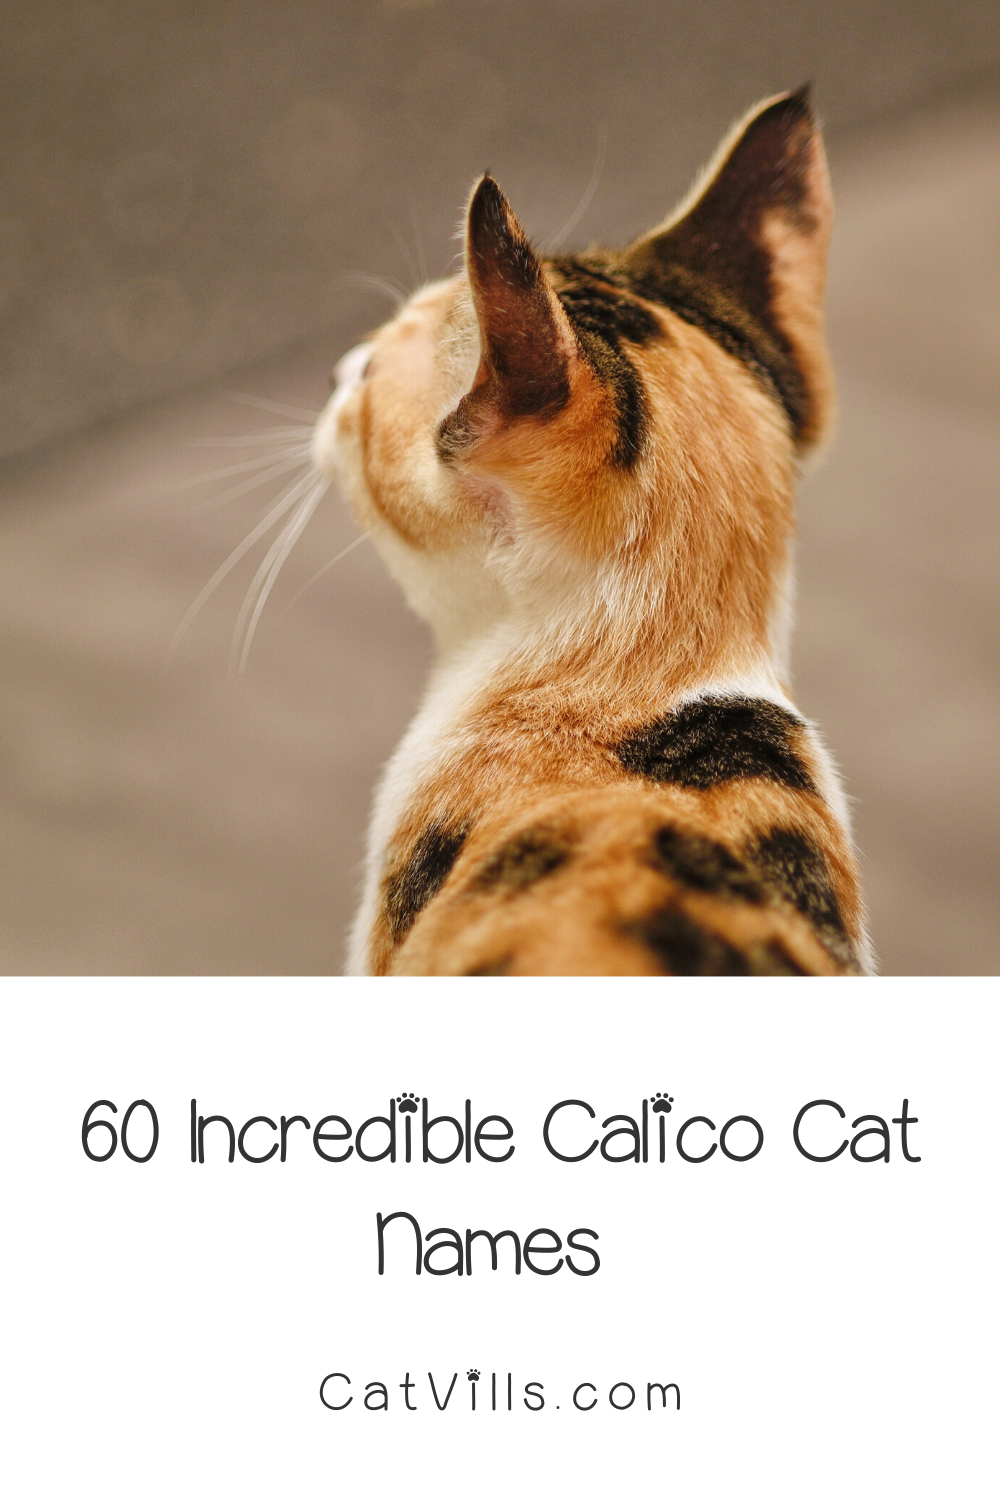 60 Clever Calico Cat Names You Ll Adore Catvills In 2020 Calico Cat Names Cat Names Cute Cat Names